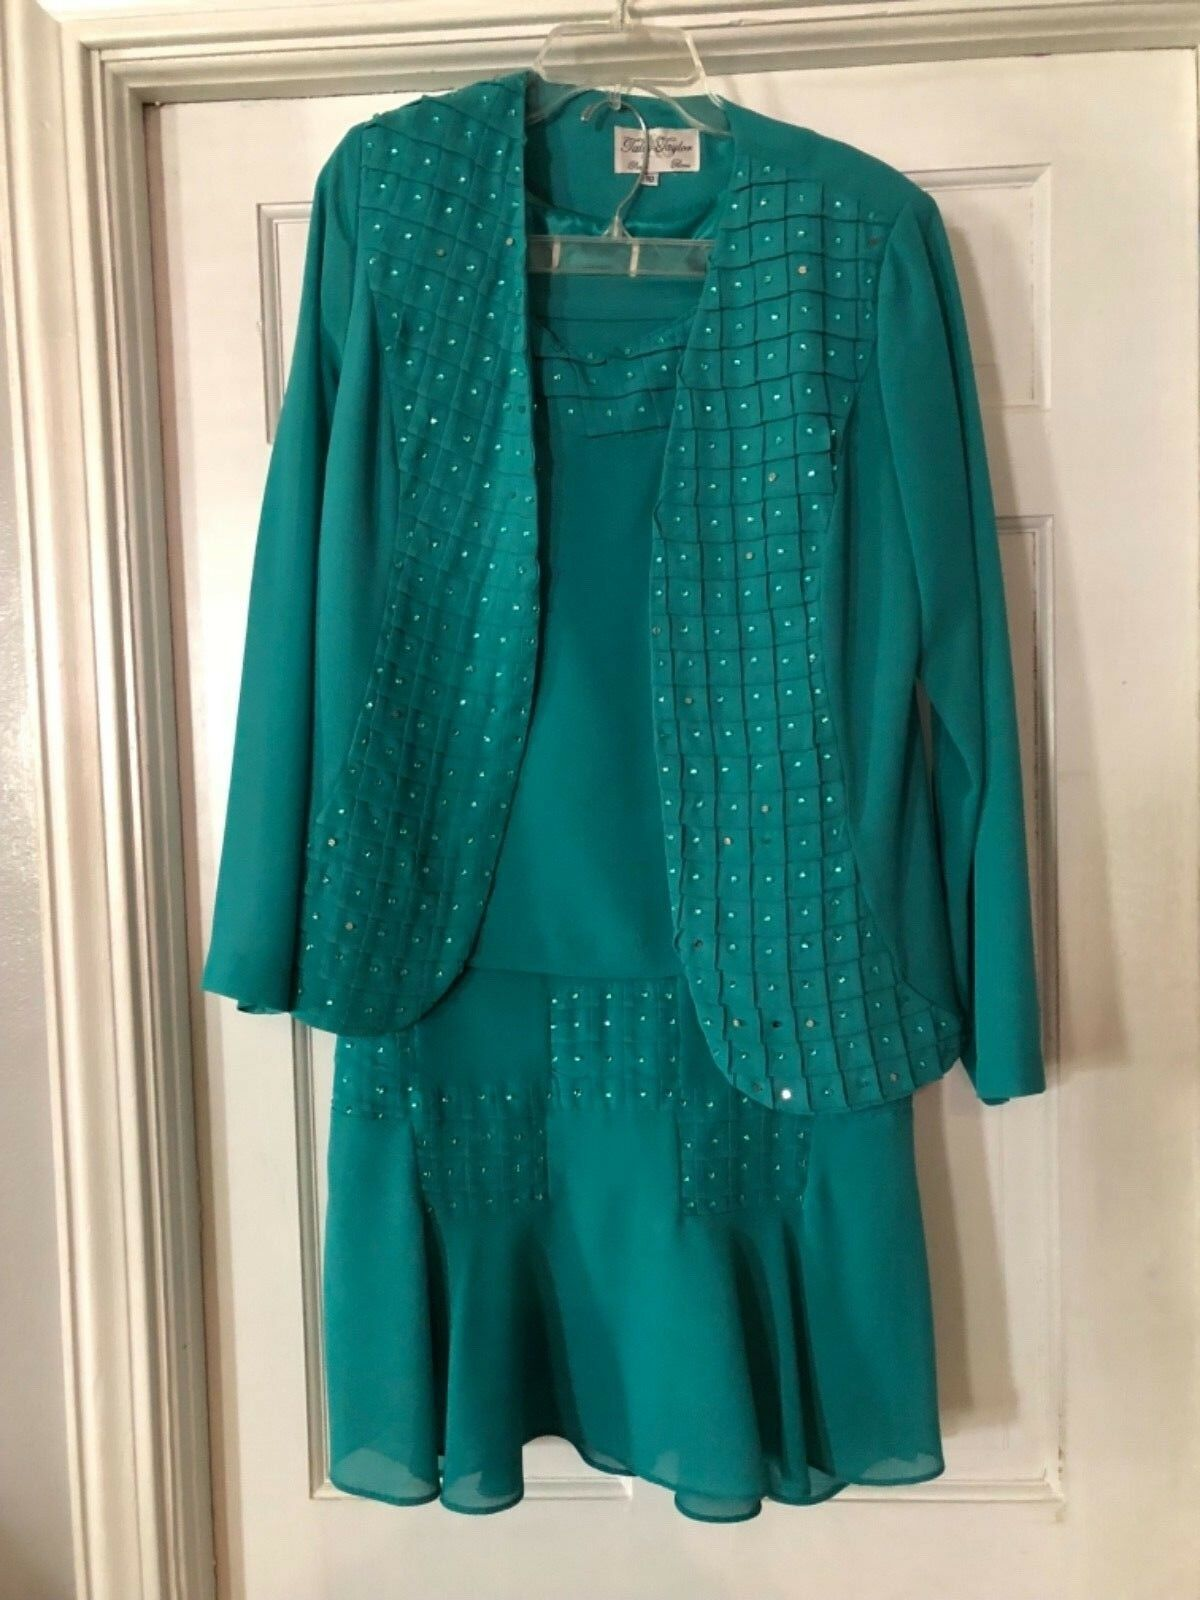 Women's Tally Taylor Teal Three Piece Skirt Suit Size 10